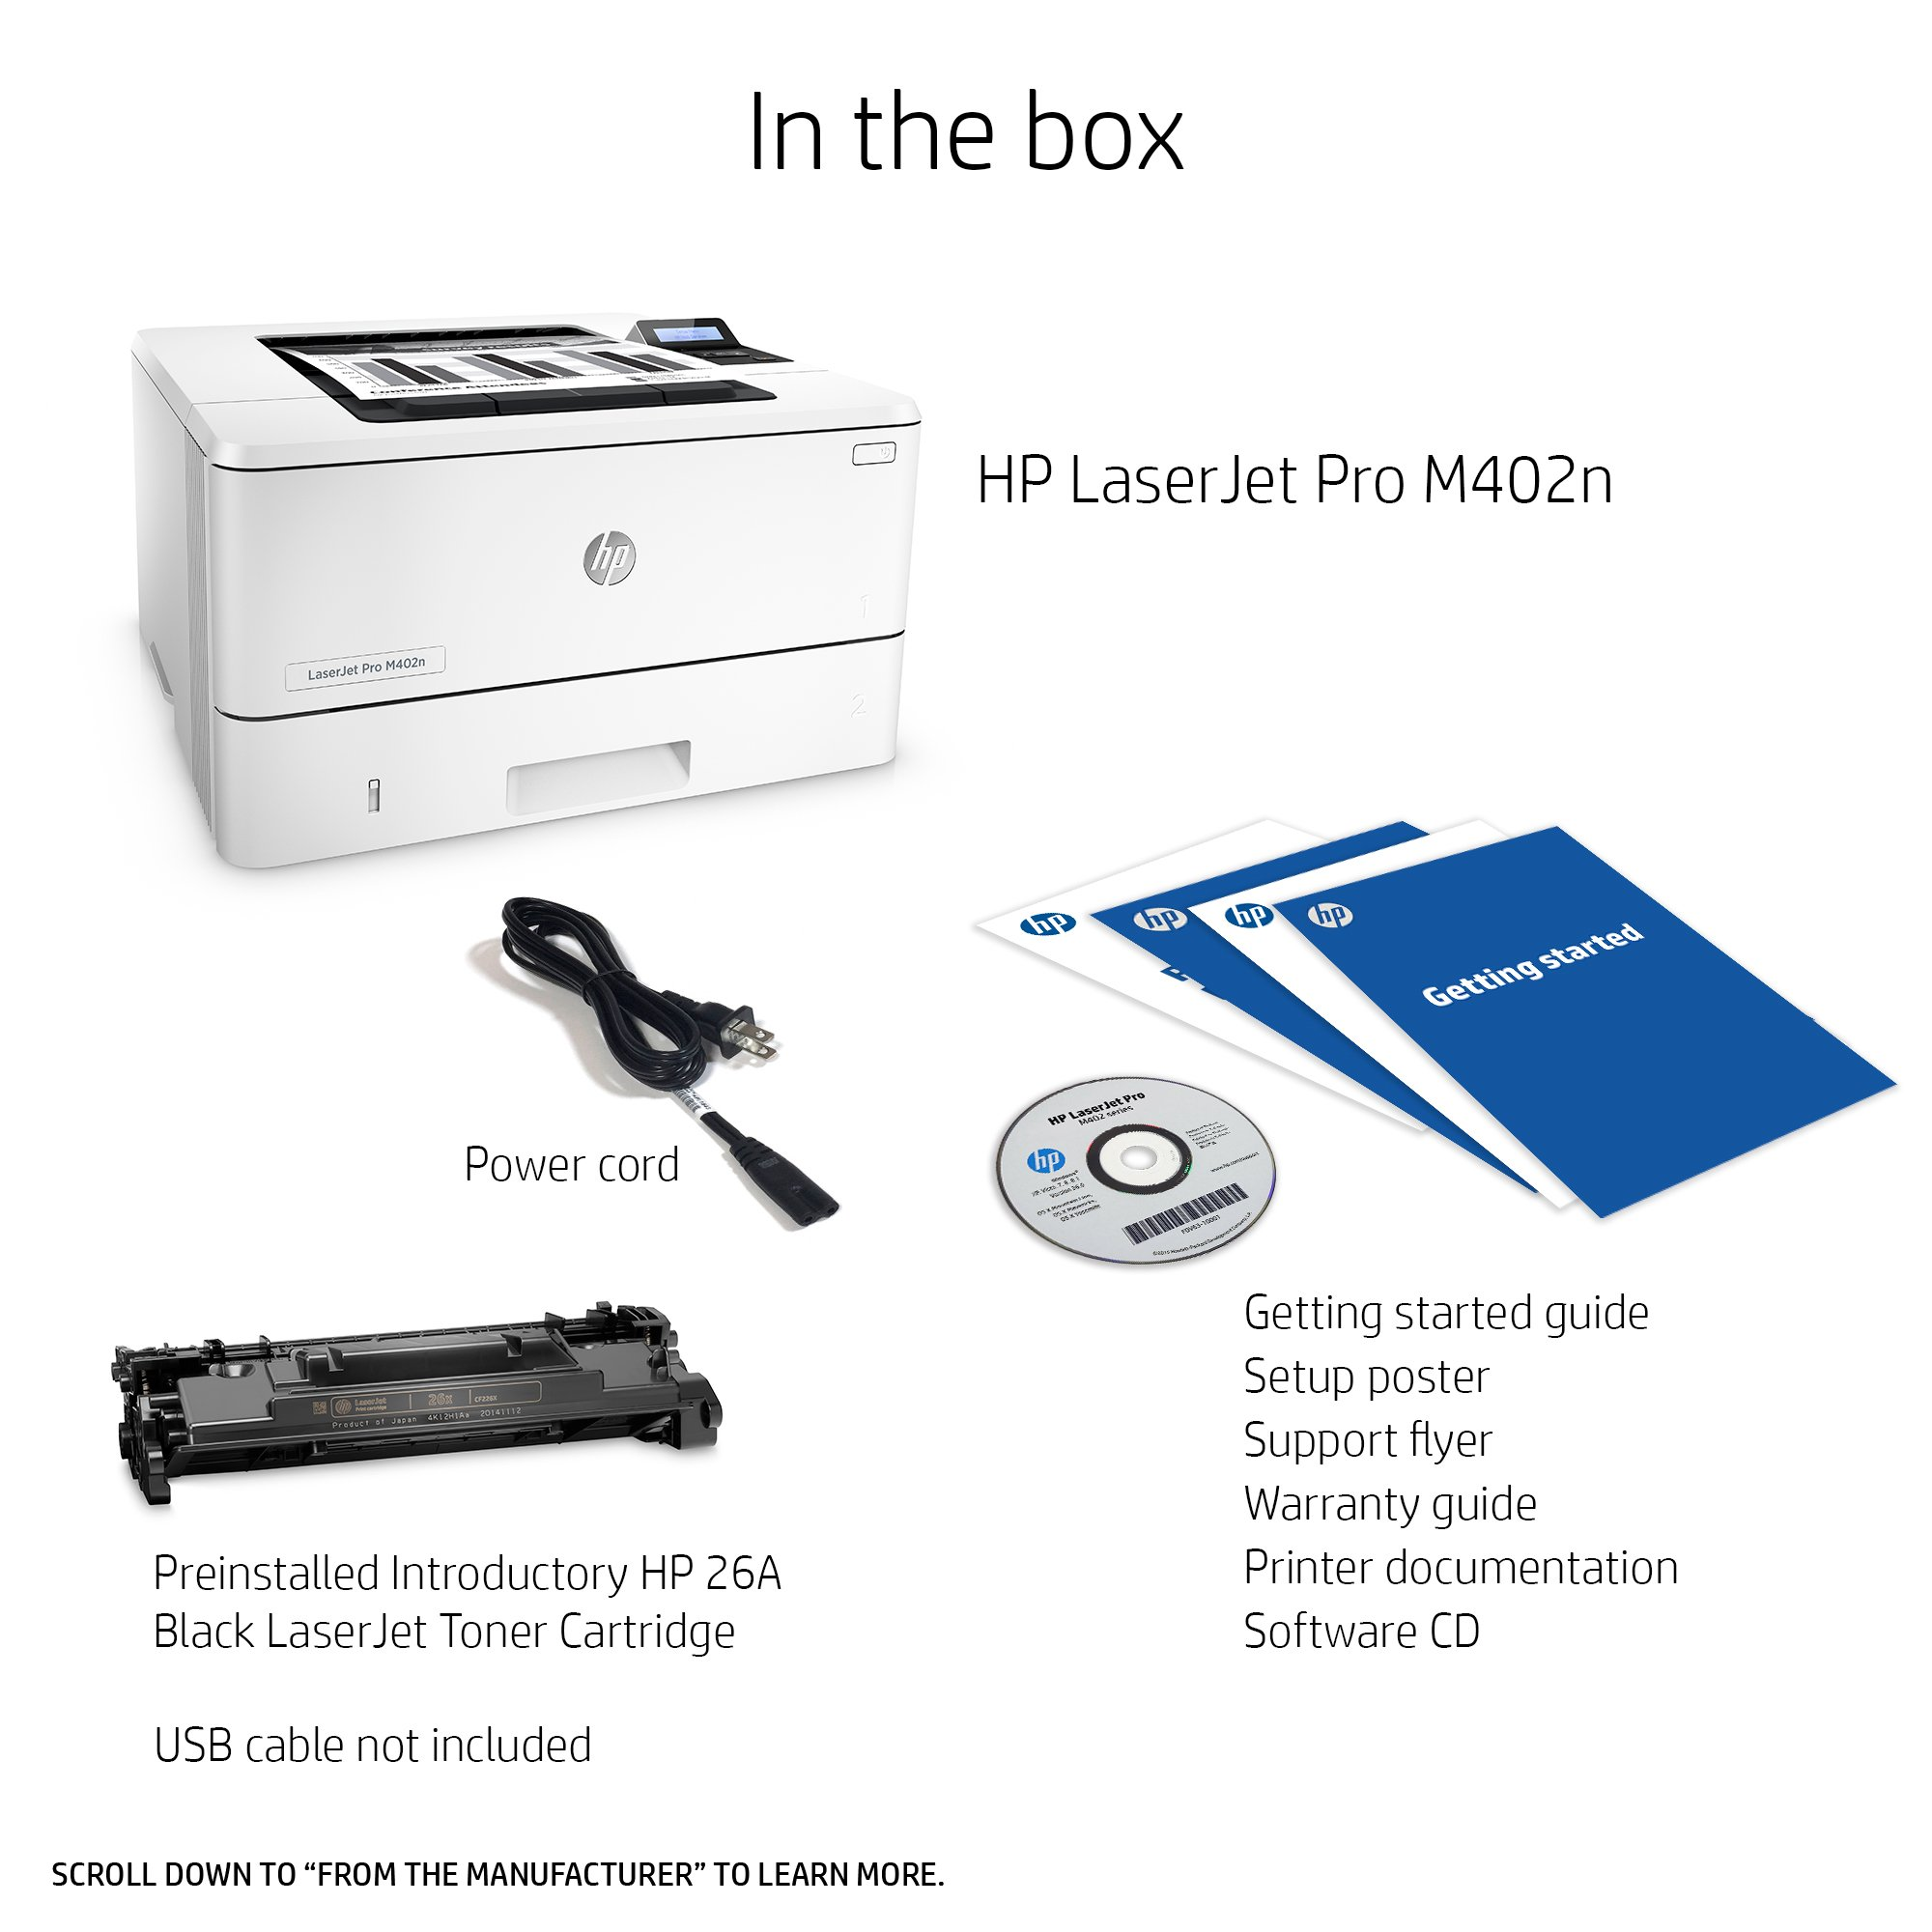 HP LaserJet Pro M402n Laser Printer with Built-in Ethernet, Amazon Dash Replenishment ready (C5F93A) by HP (Image #4)